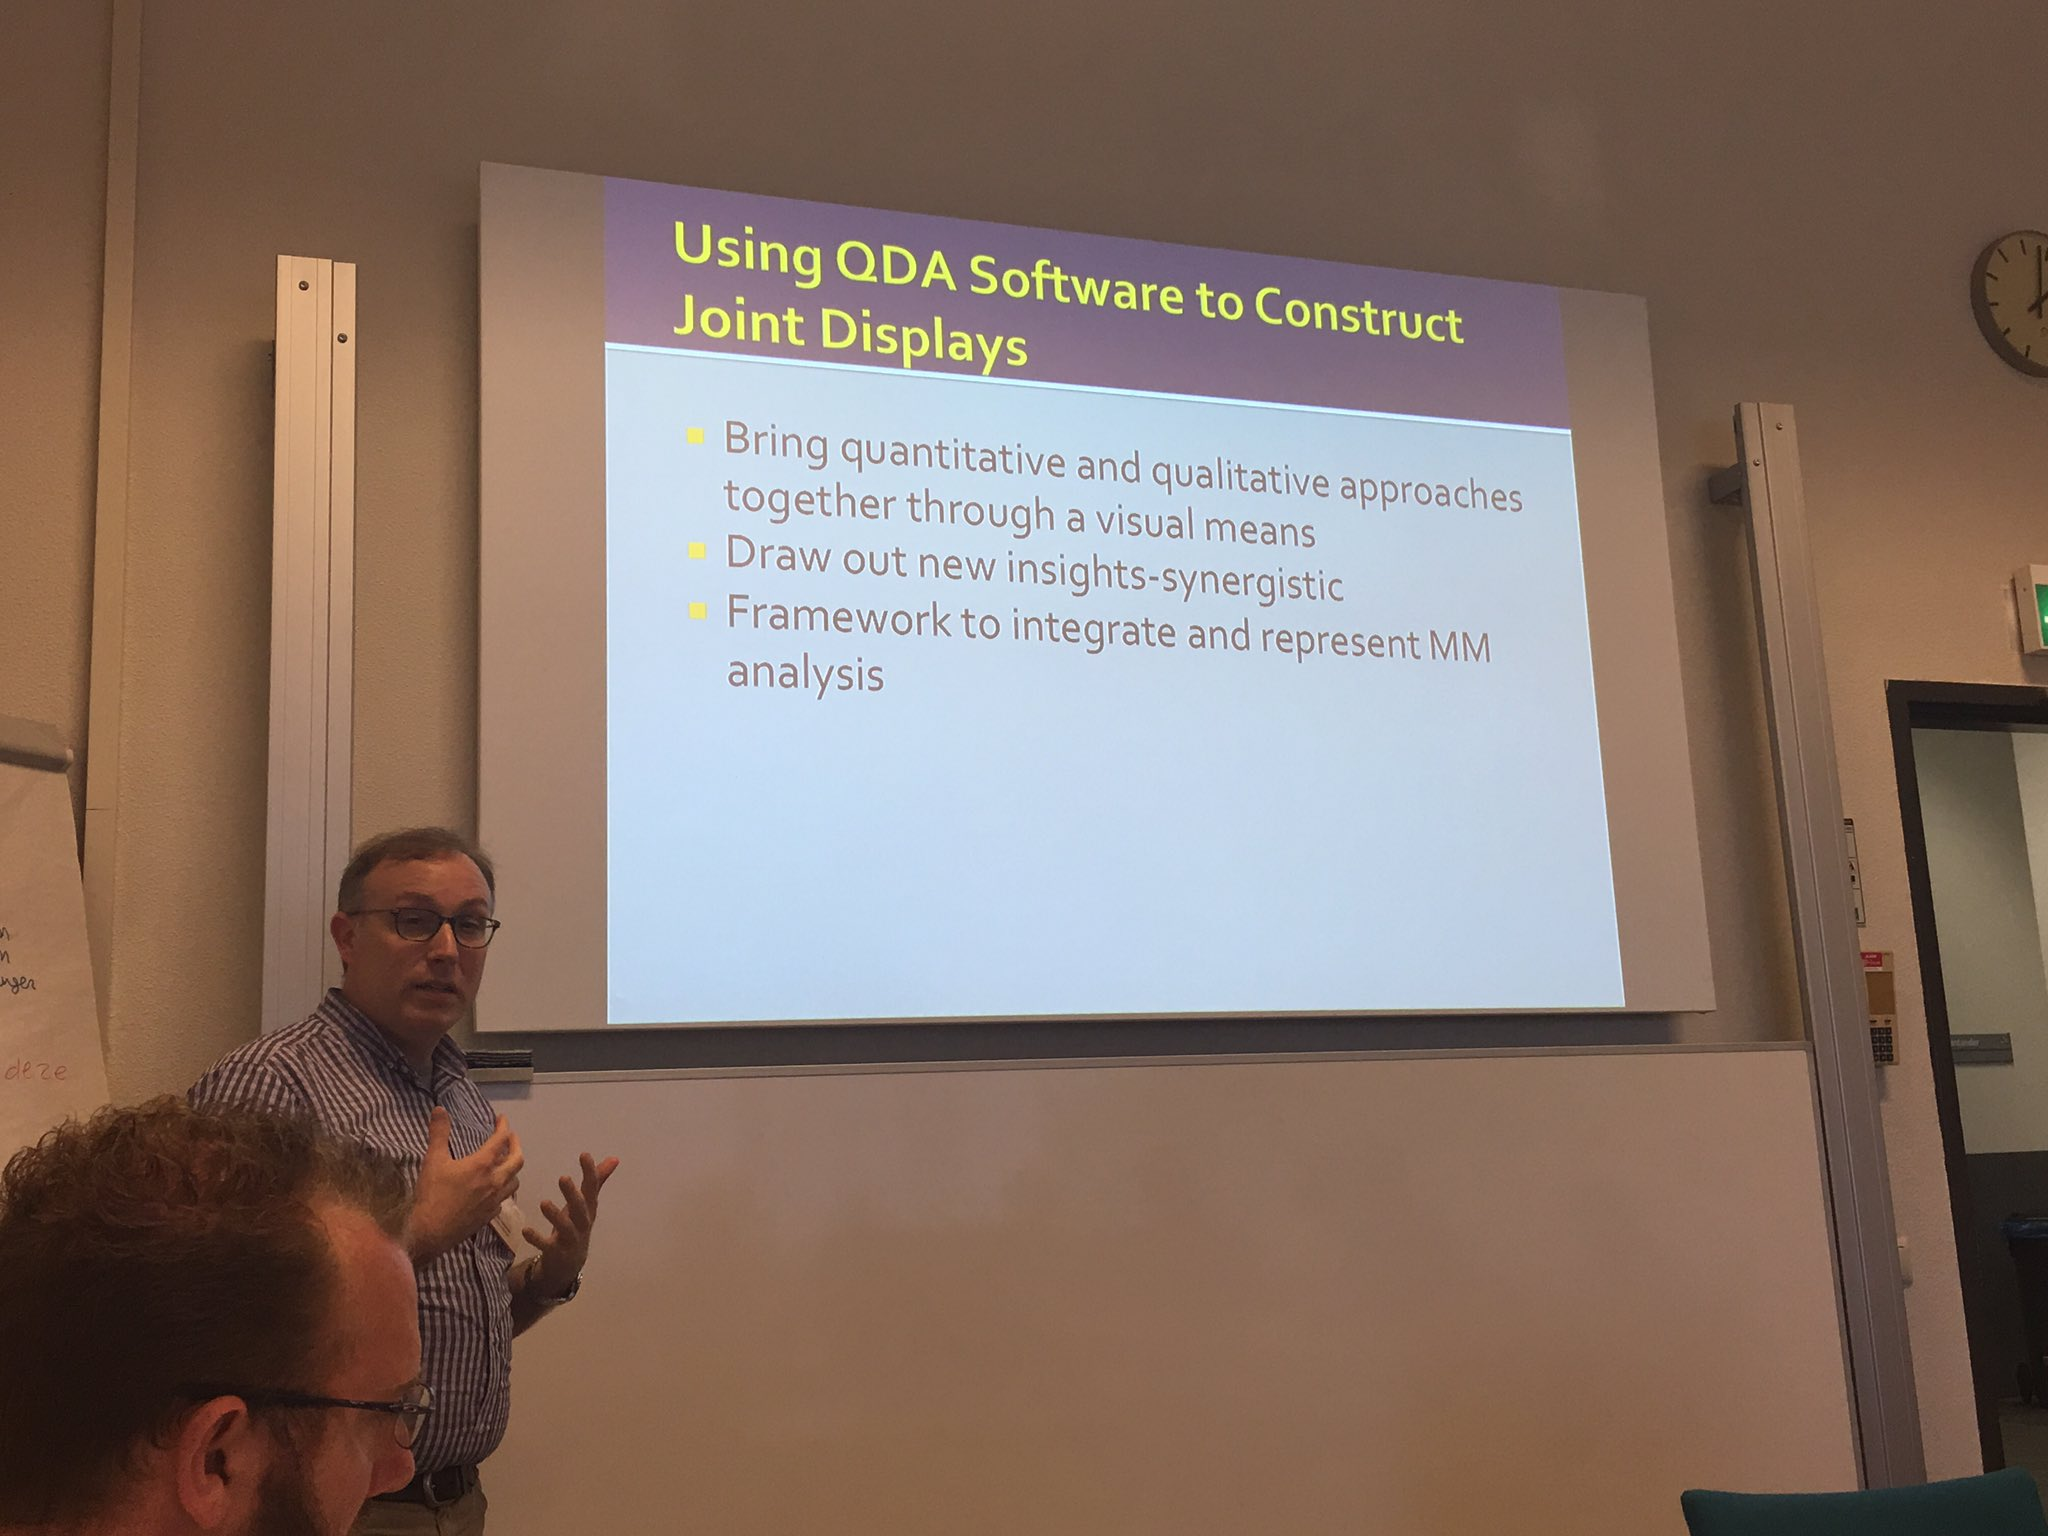 image of timothy guetterman giving presentation on QDA software at KWALON conference in